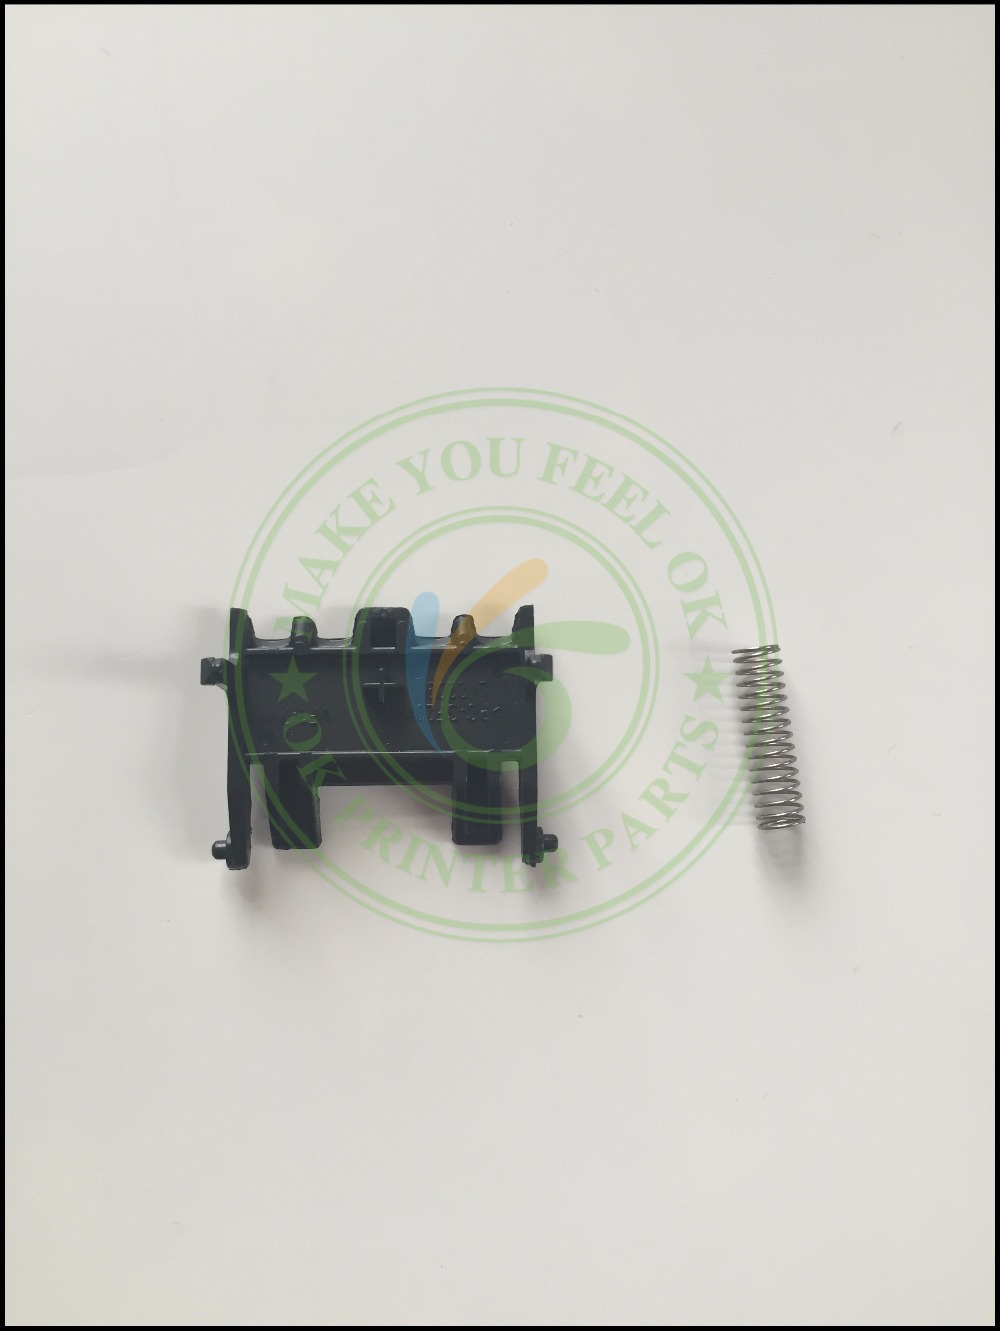 LY2208001 Separation Pad Assembly with Spring for Brother DCP7065 7060 HL2220 2230 2240 2270 2280 FAX2840 2940 MFC7240 7360 7860